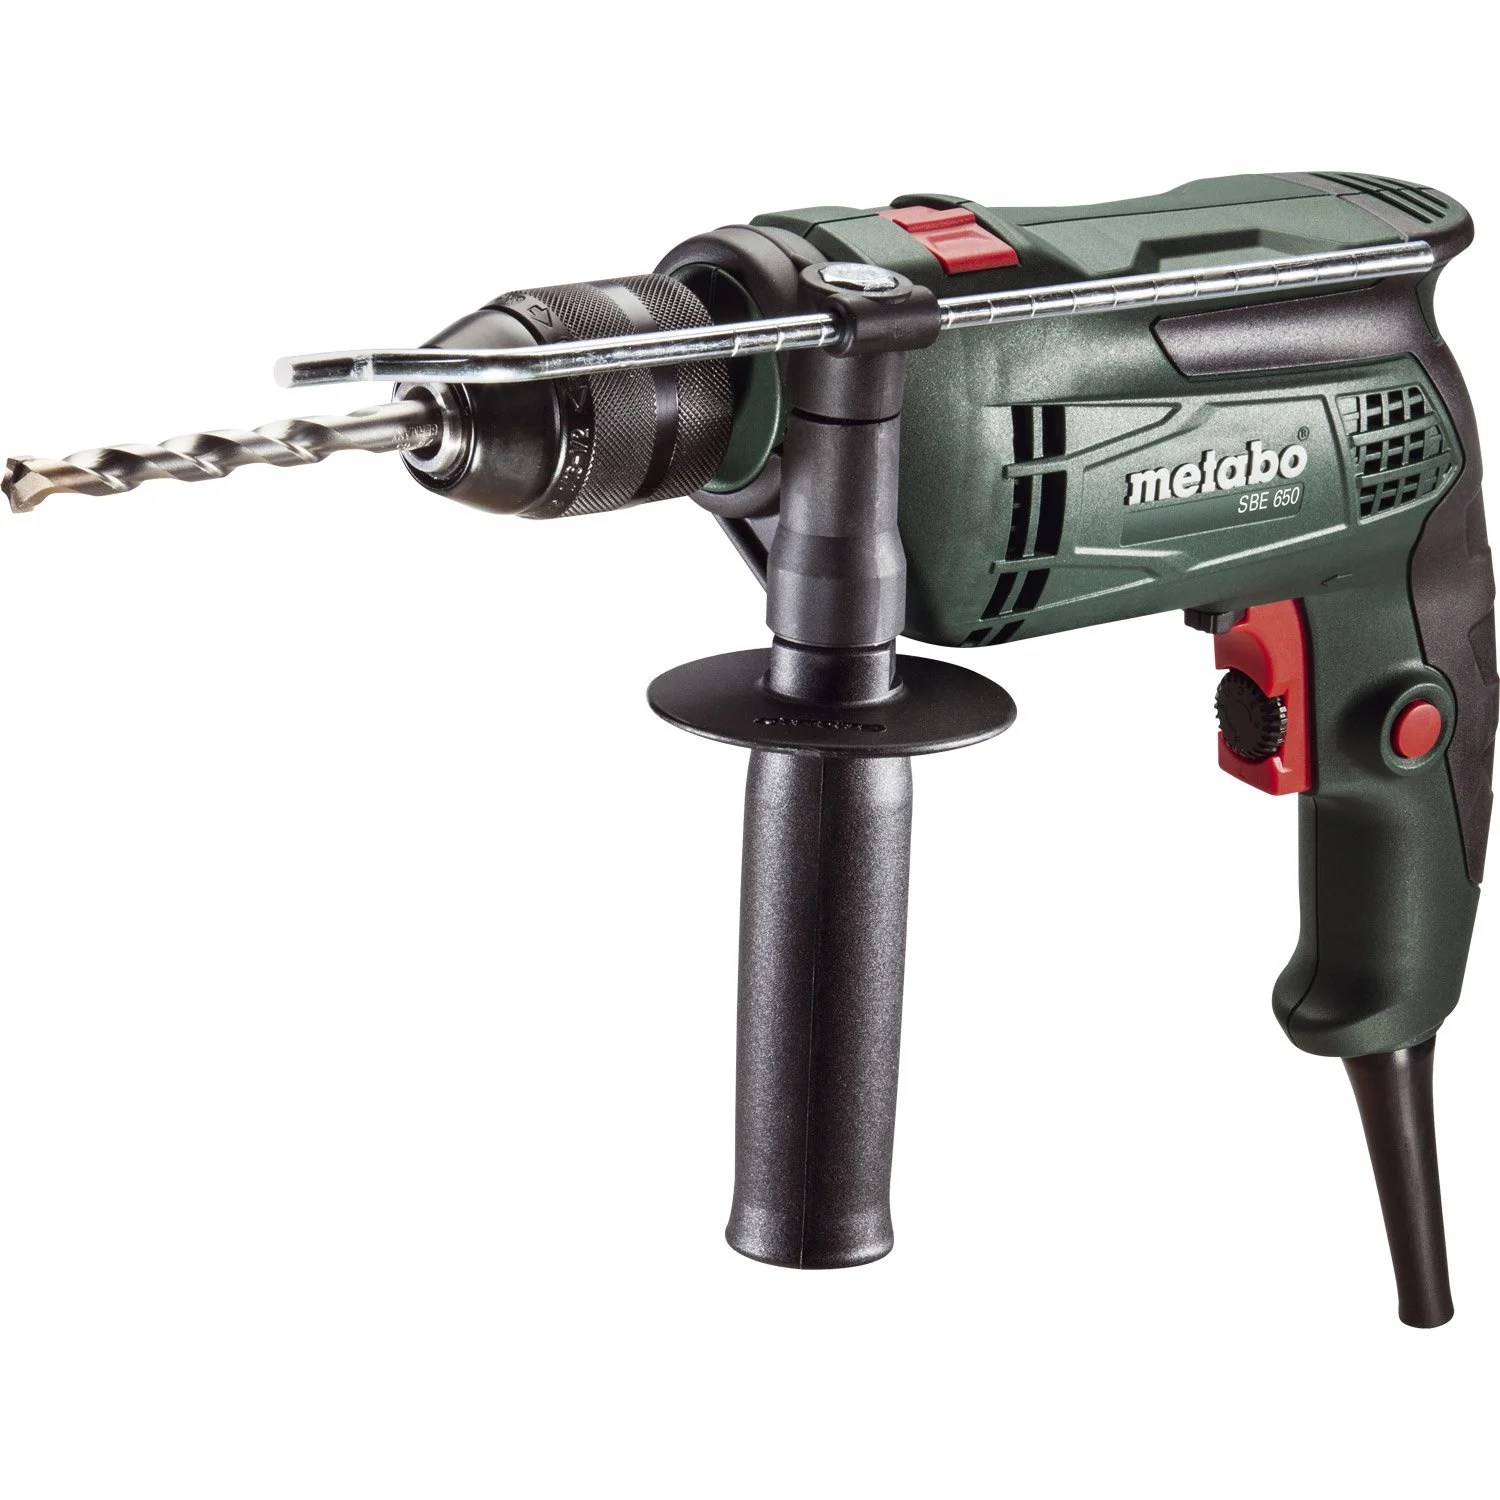 Metabo Leroy Merlin Perceuse à Percussion Filaire Metabo Sbe650 Leroy Merlin